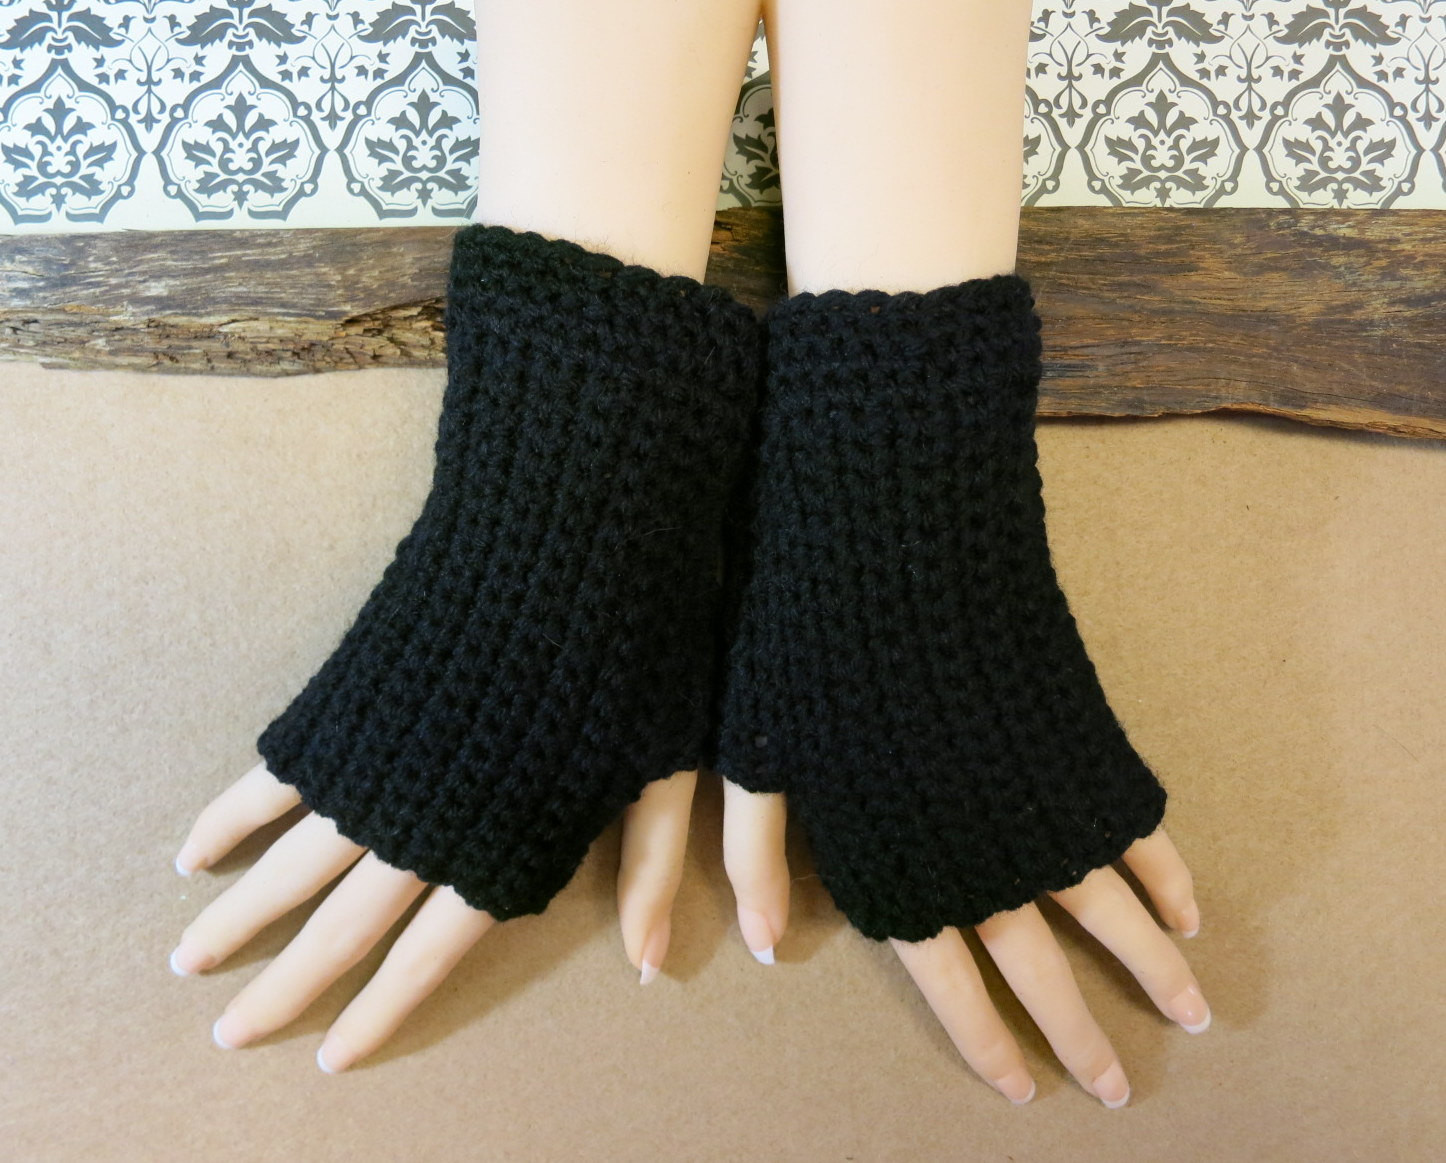 Awesome Crochet Fingerless Gloves Wrist Warmers Black Arm Warmers Crochet Arm Warmers Of Gorgeous 44 Images Crochet Arm Warmers